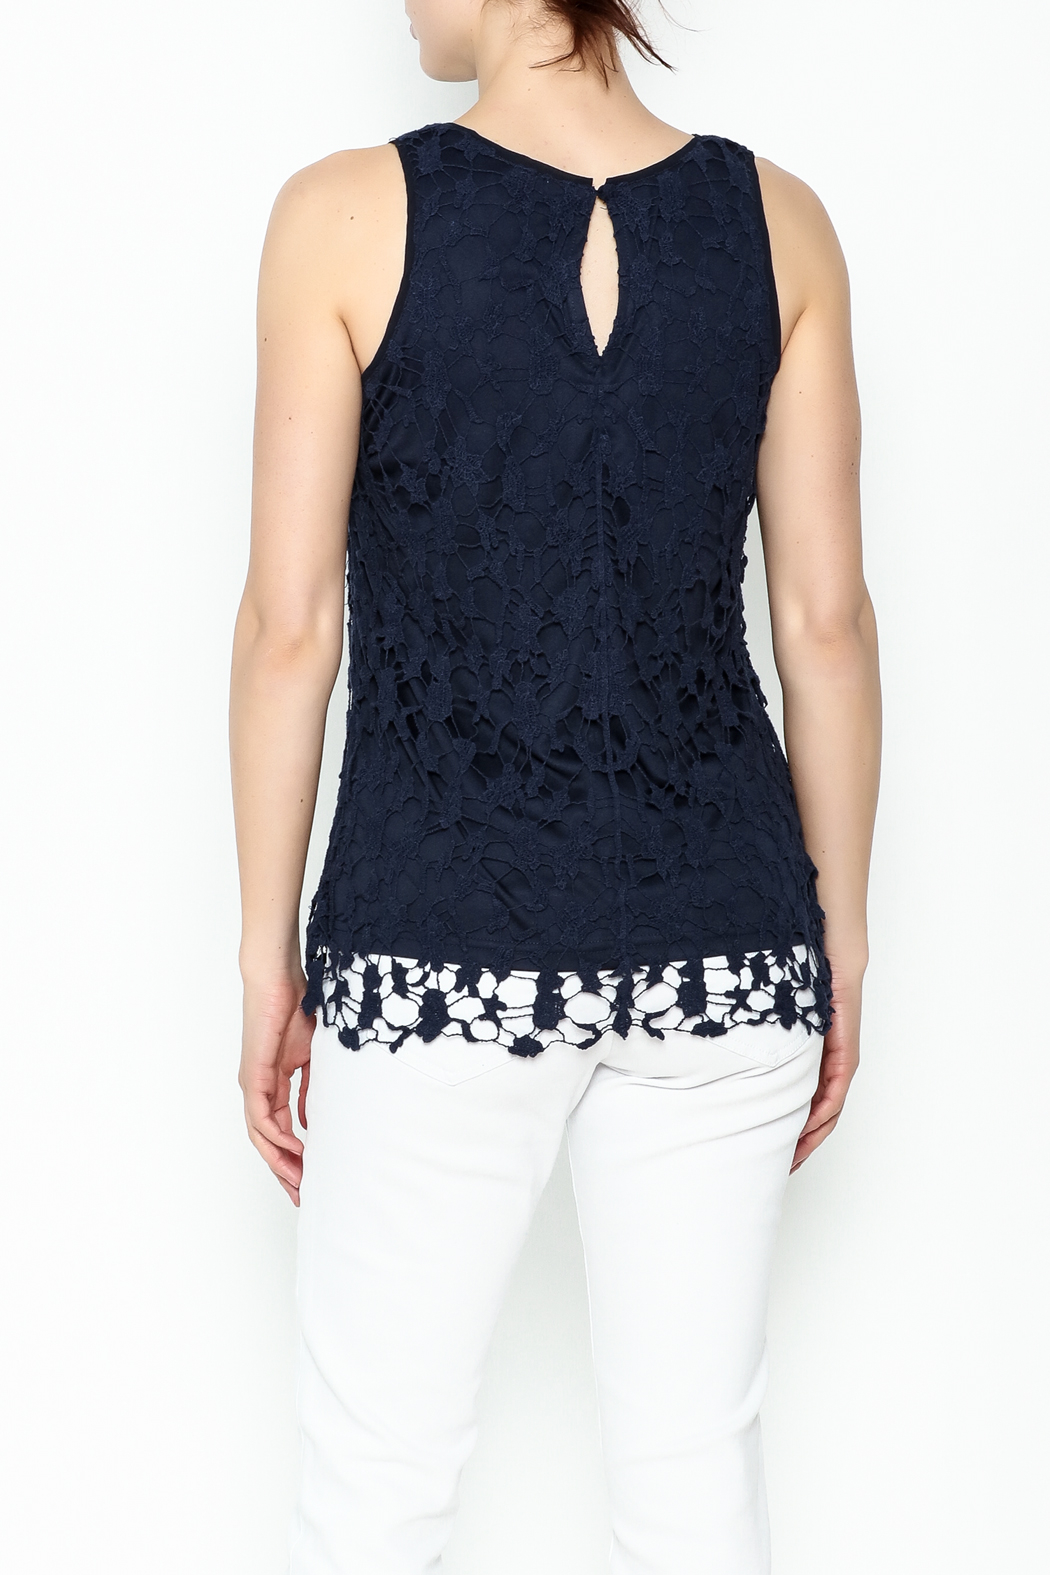 Keren Hart Lace Sleeveless Top - Back Cropped Image